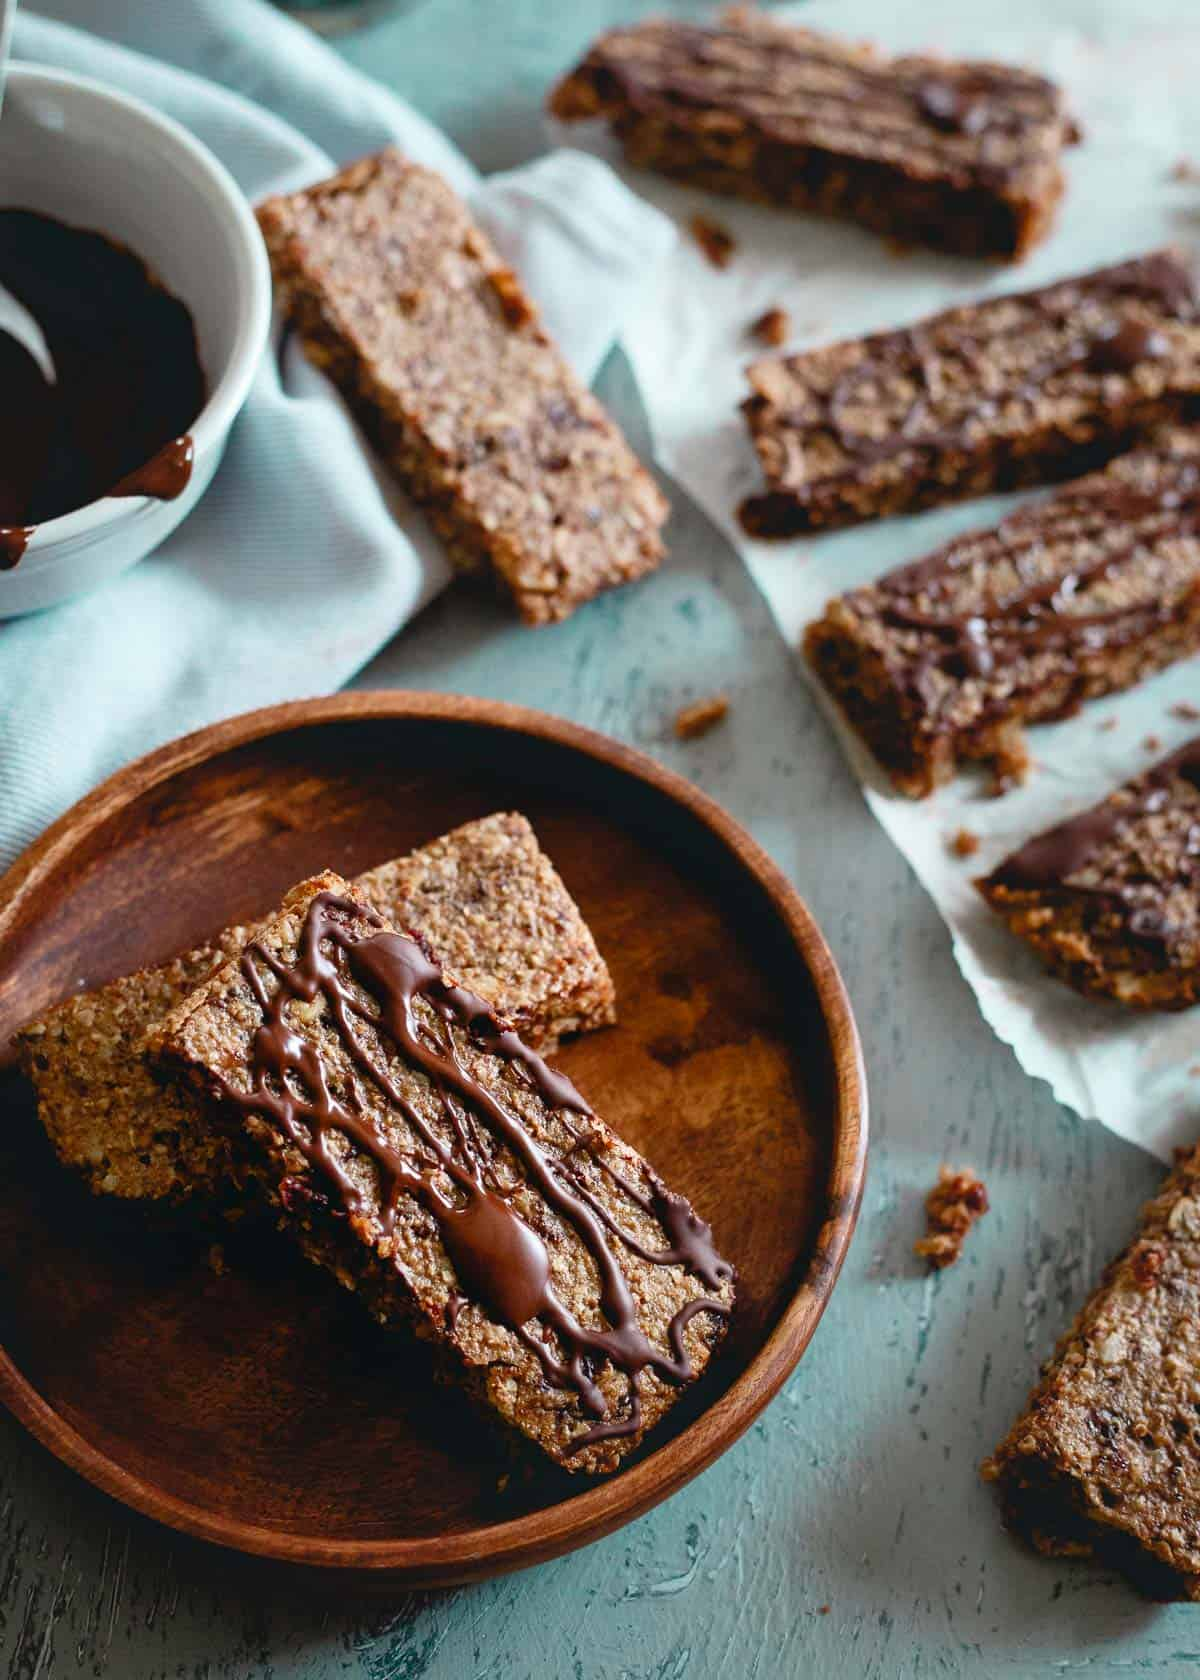 With tart cherries, dates, oats and heart healthy nuts, these chewy granola bars are snacking perfection!